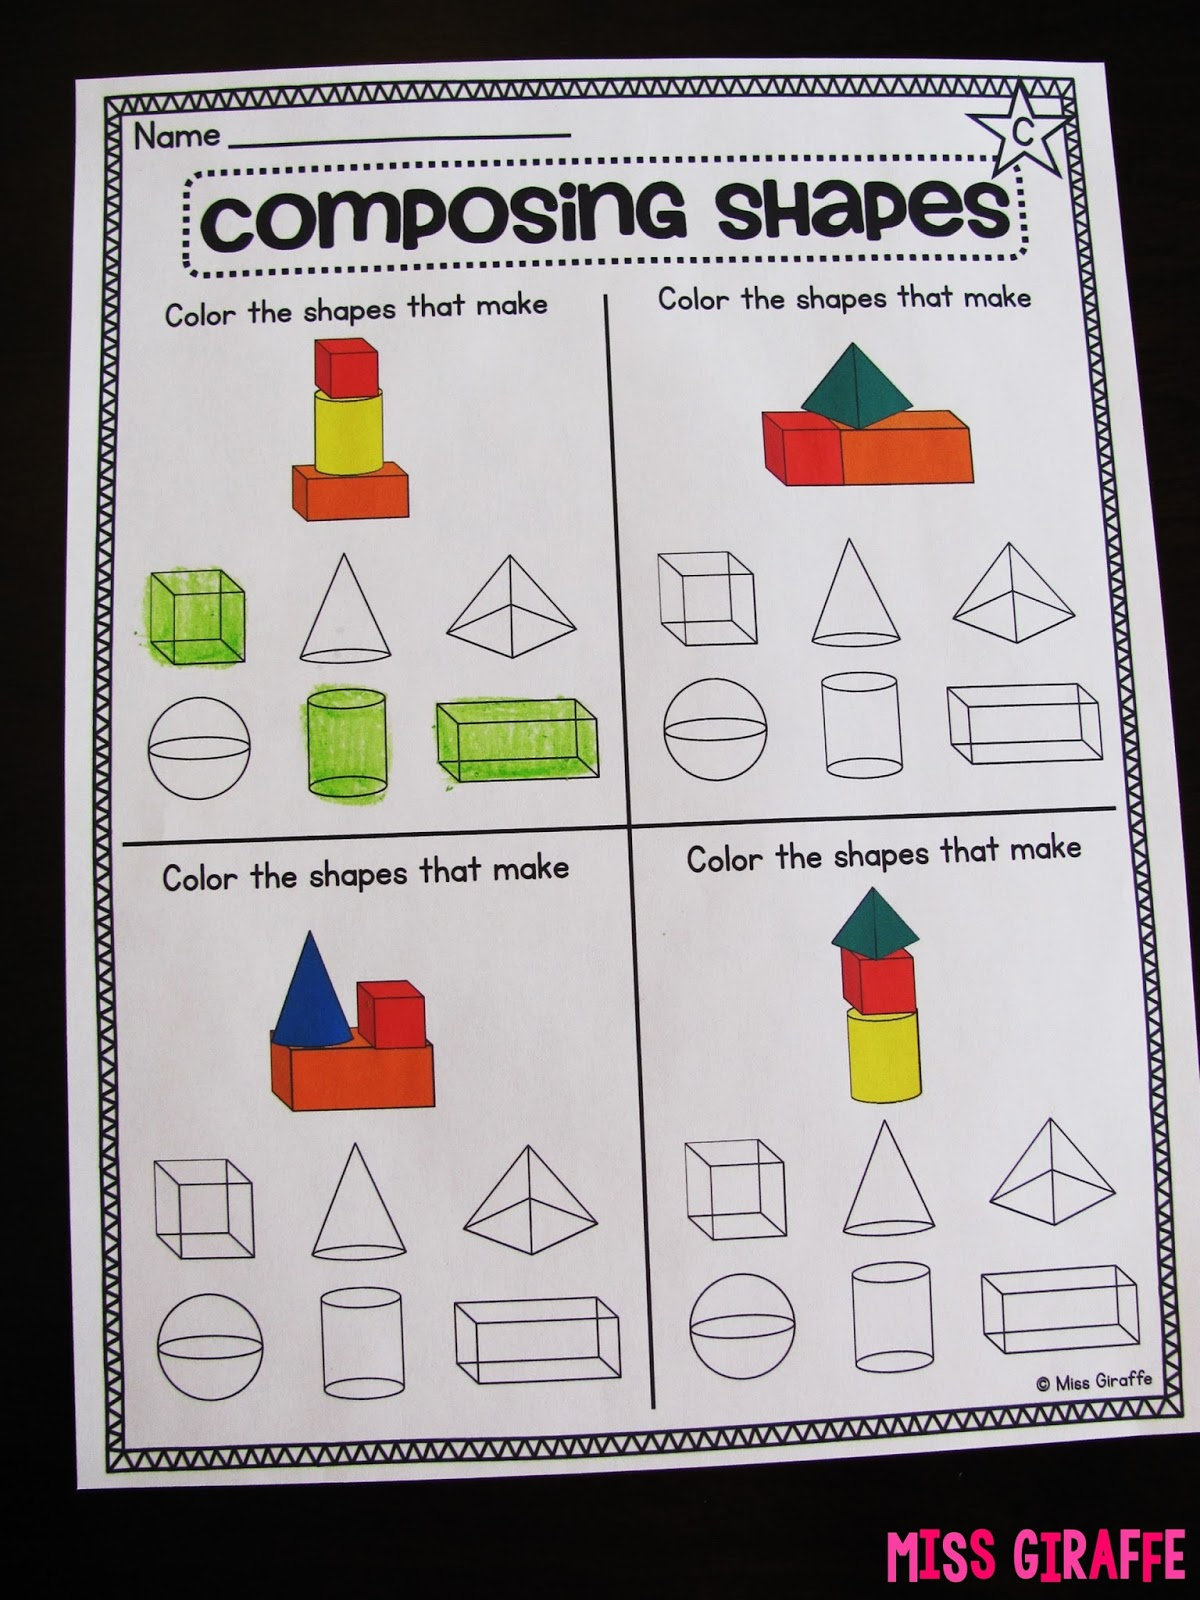 small resolution of Miss Giraffe's Class: Composing Shapes in 1st Grade